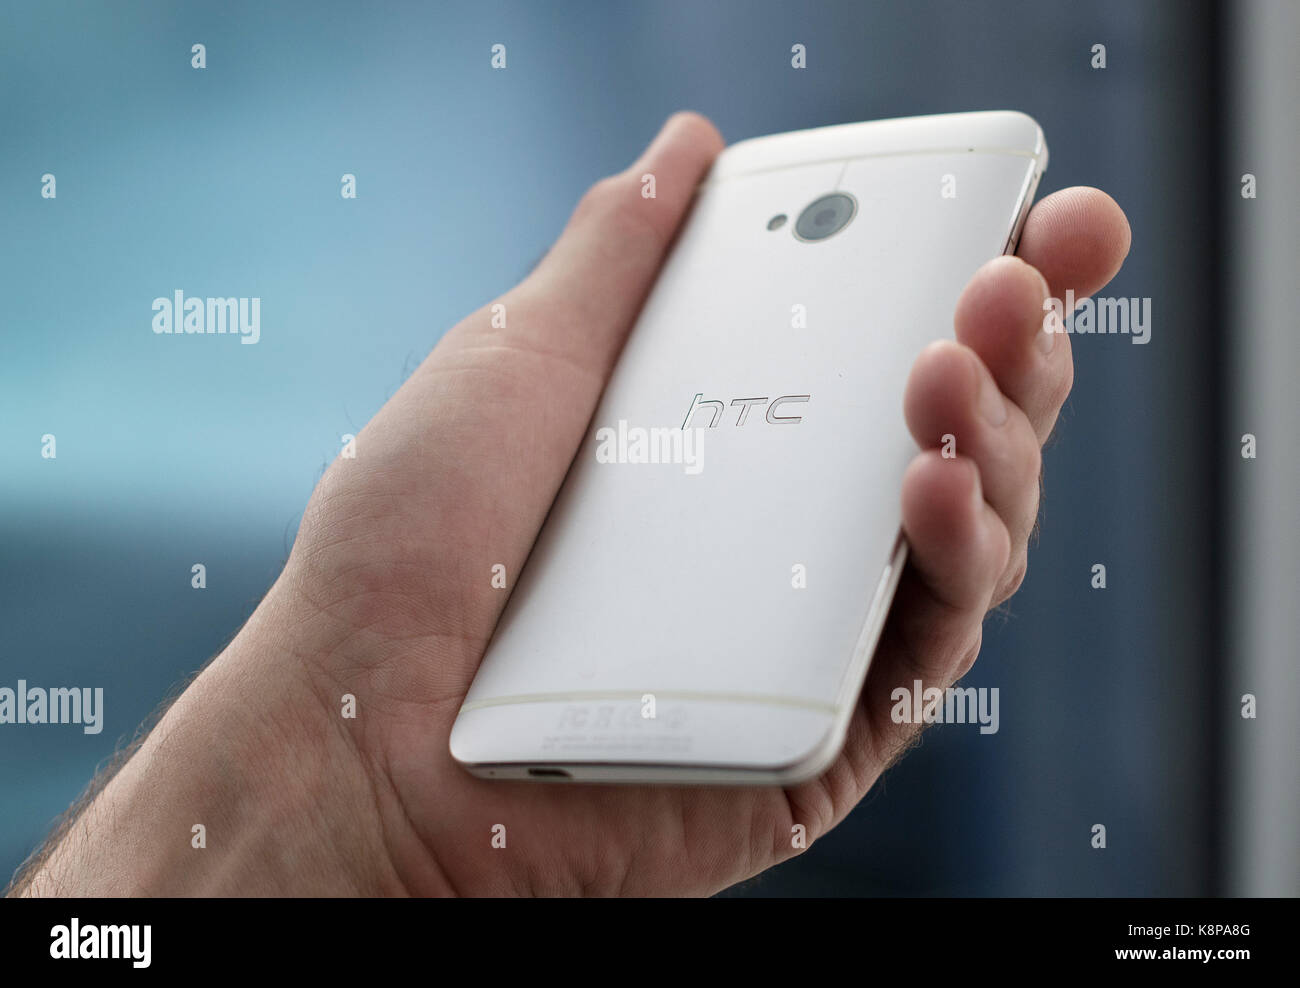 ILLUSTRATION- A hand holding an HTCsmartphone in Berlin, Germany, 20 September 2017. Photo: Fabian Sommer/dpa - Stock Image